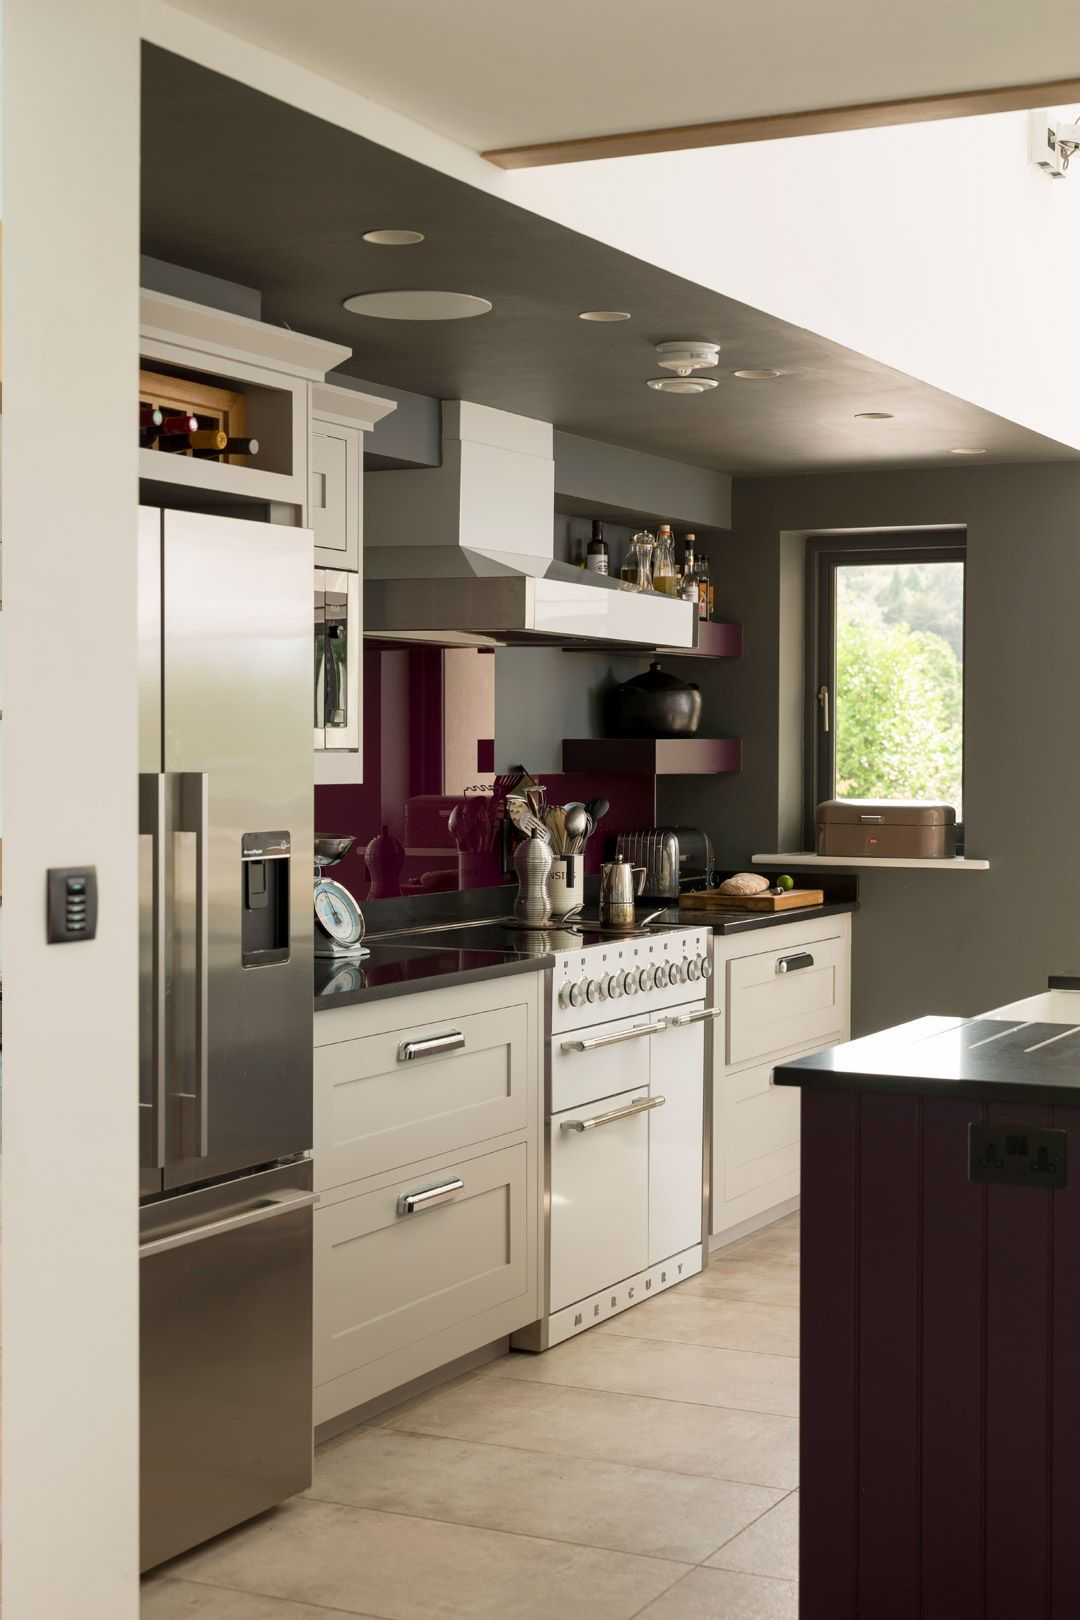 Compact kitchen ideas. Building your own home and the cost ...